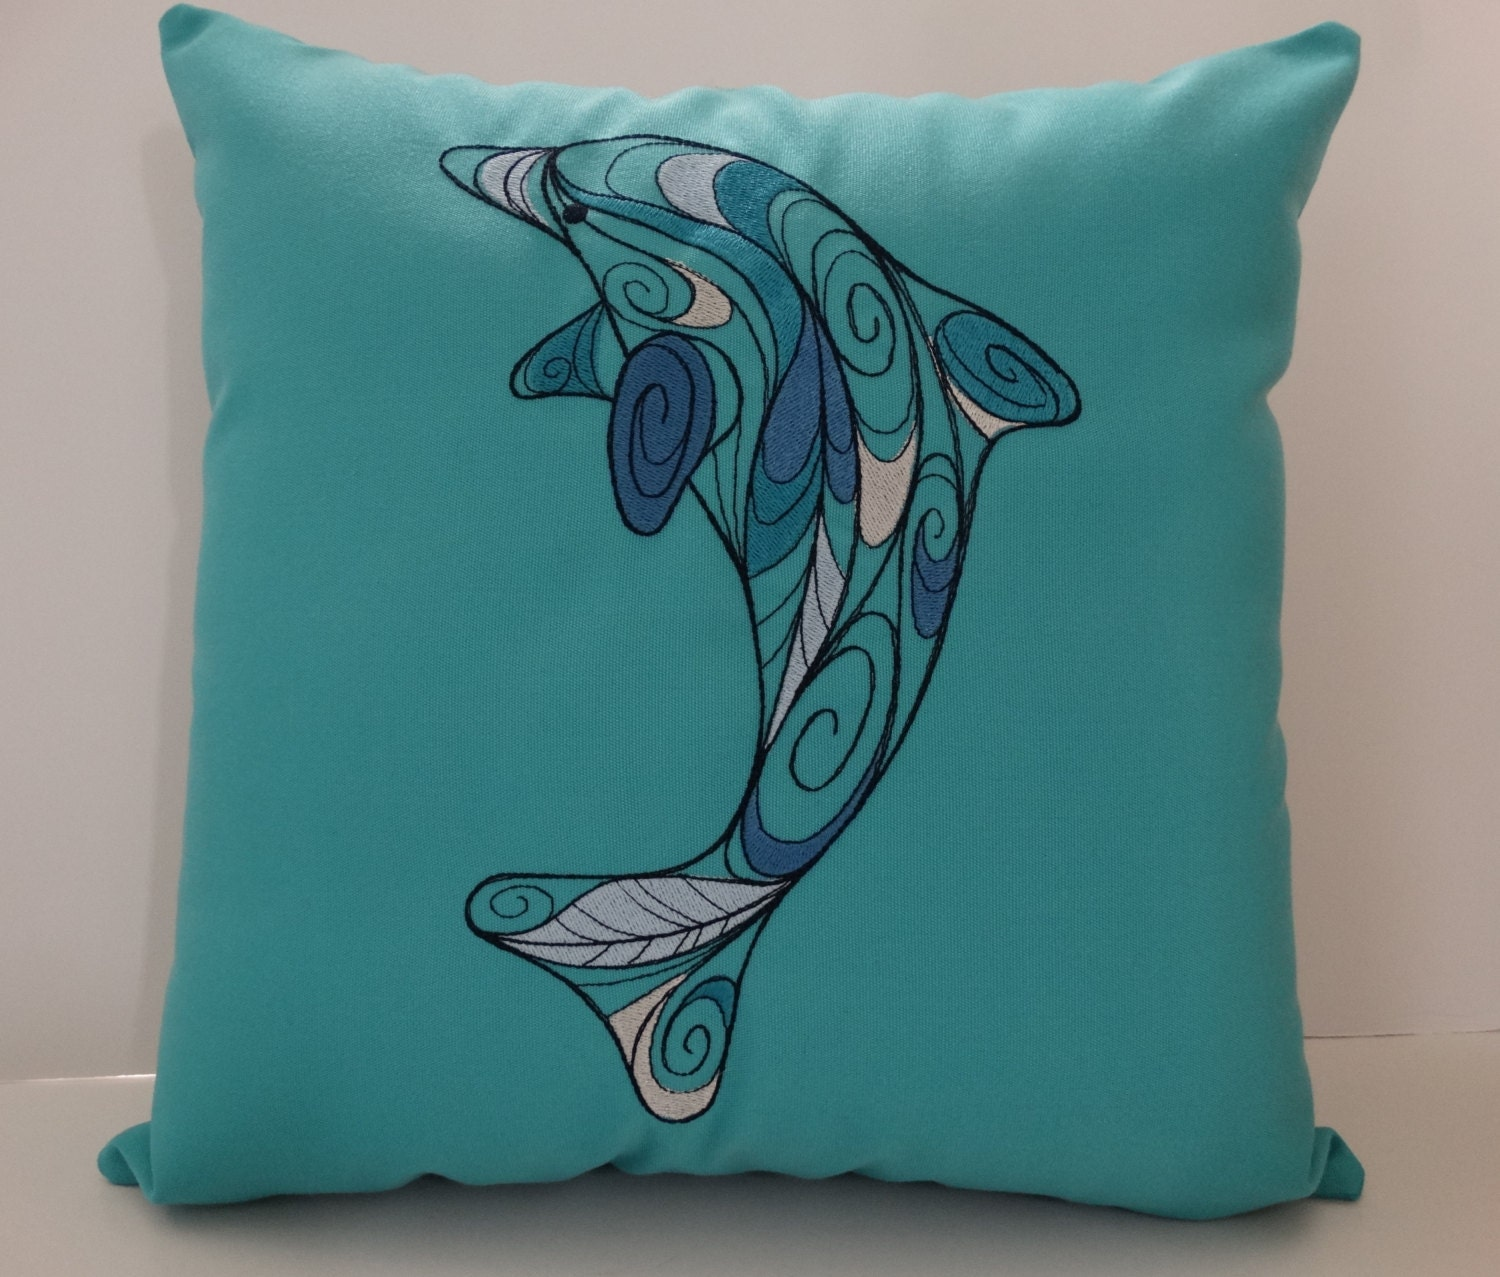 hooked beach handmade jwrobel cashmere by themed pillow sandollarstarfish vintage system flipillow pillows jovo